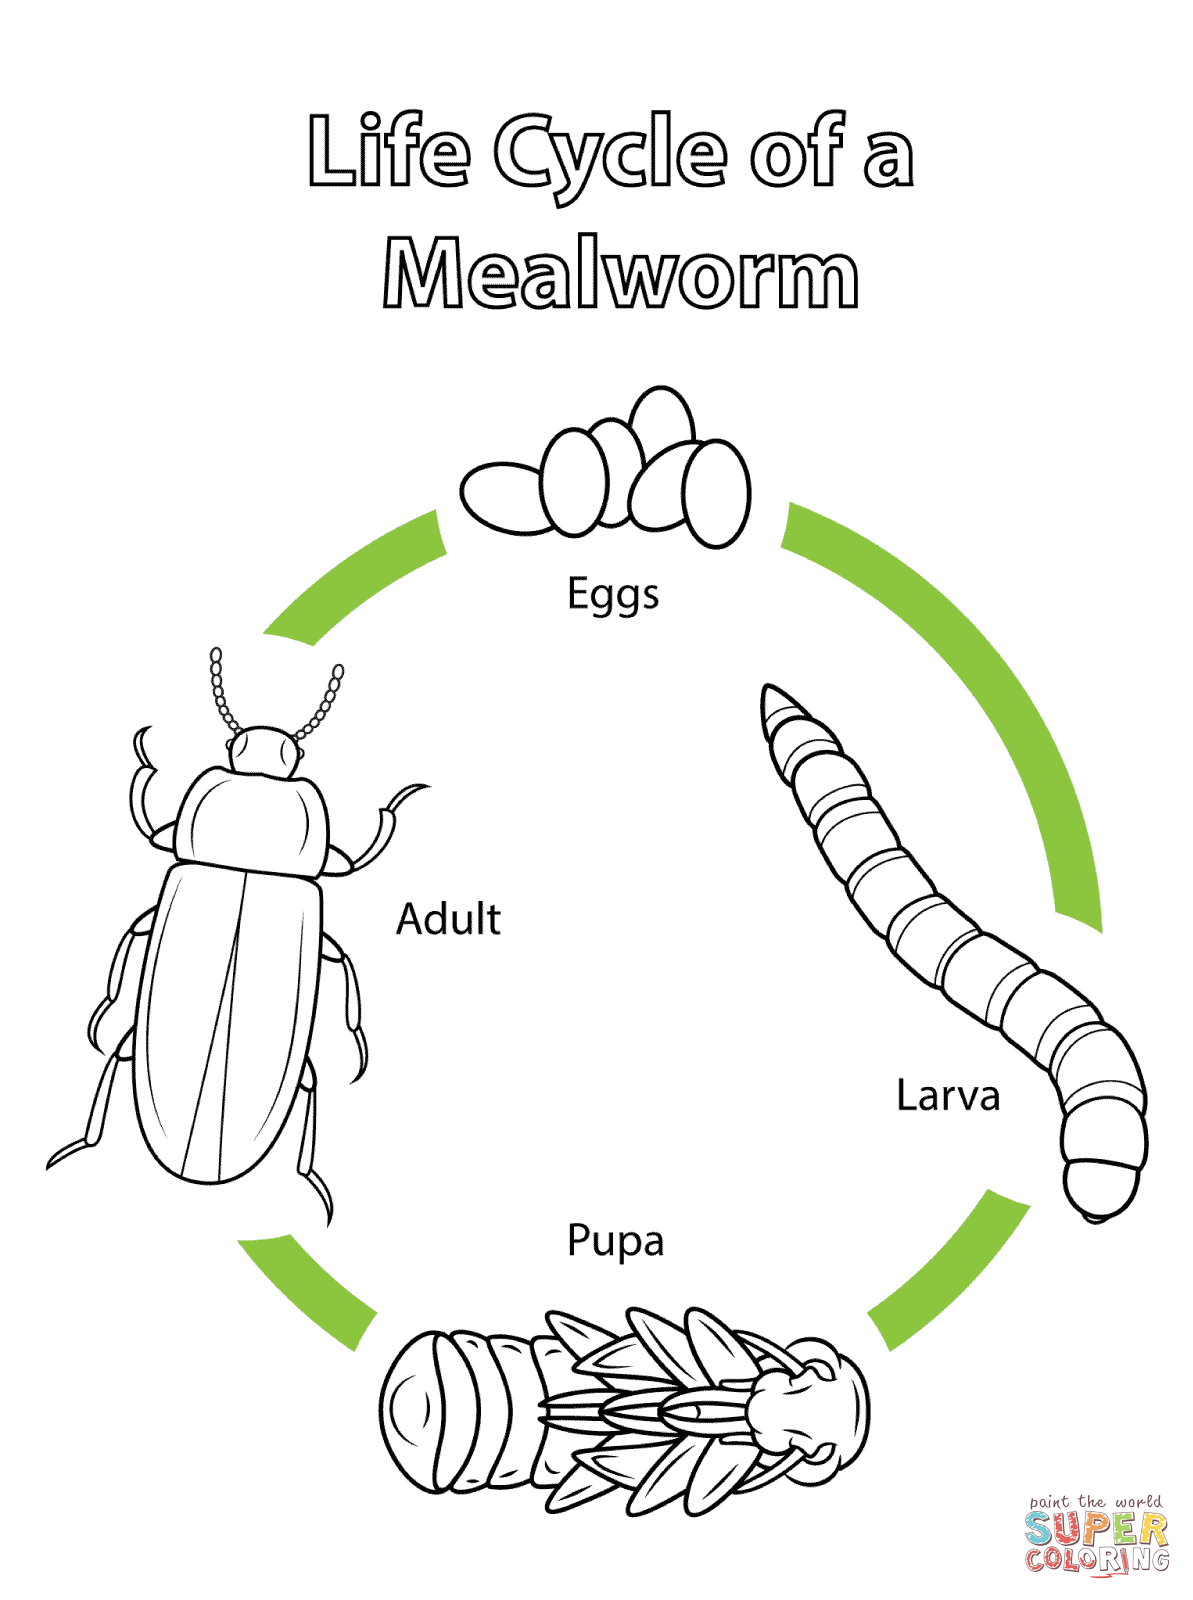 Life Cycle Of A Mealworm Coloring Page